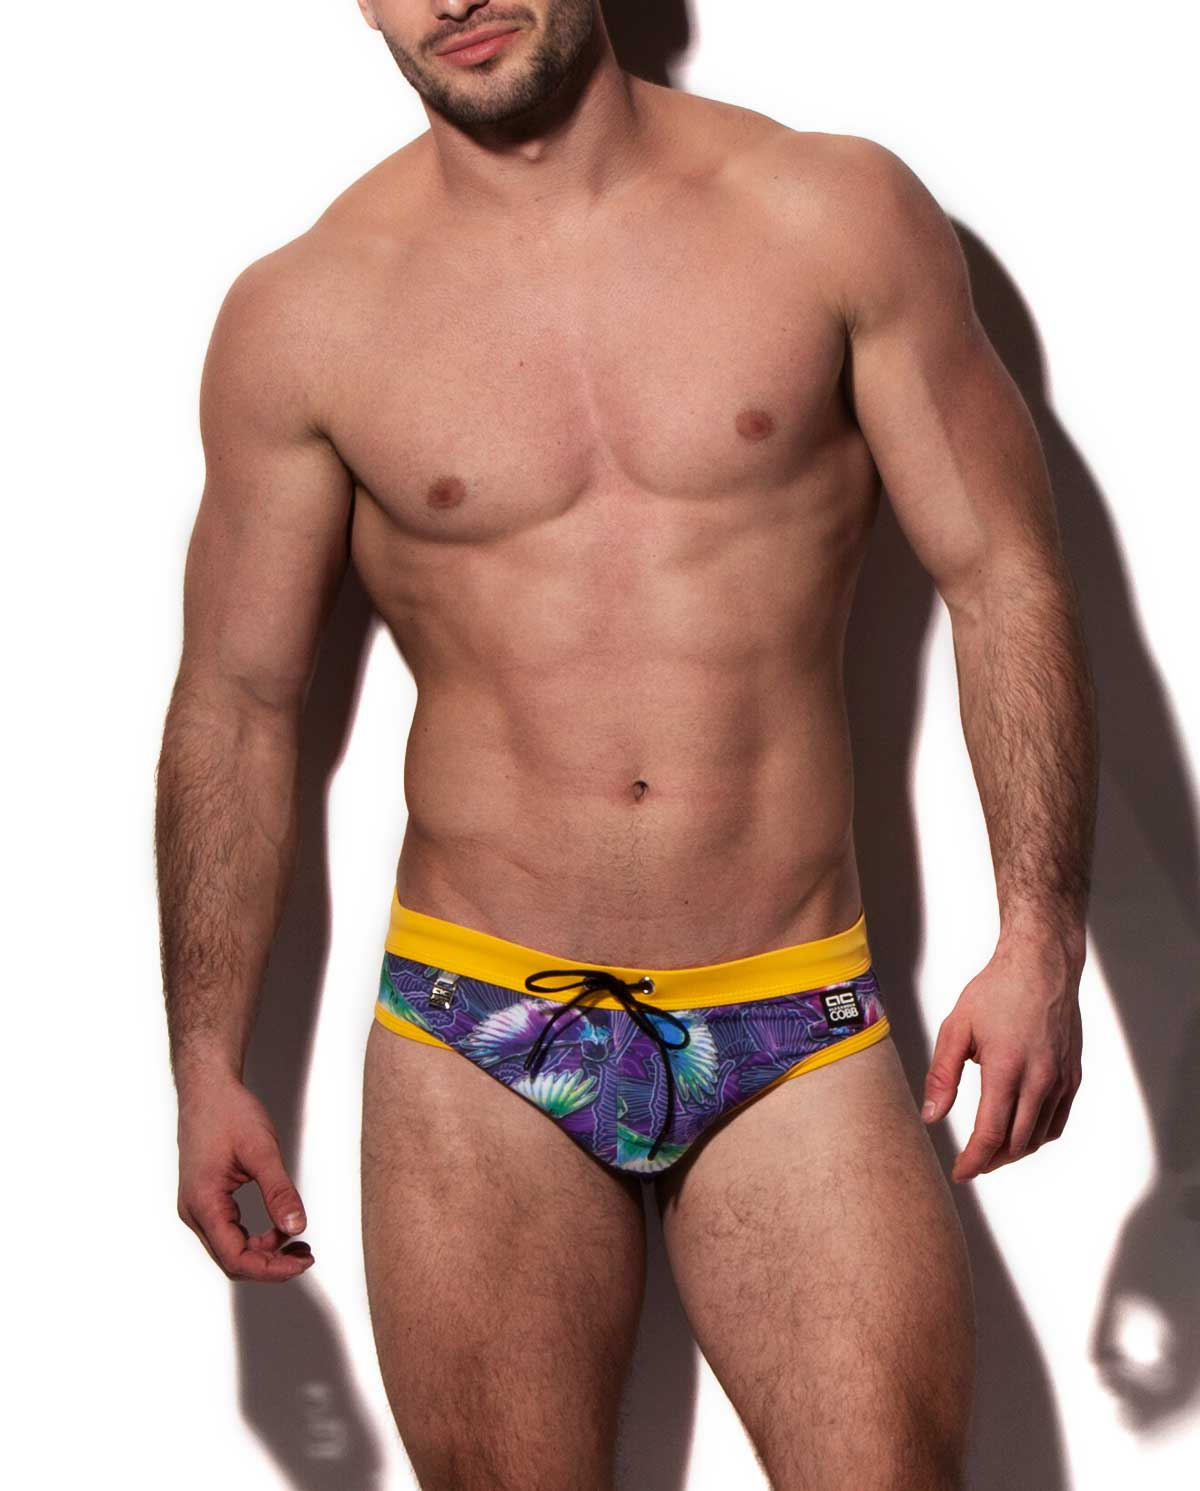 Male mode wearing Alexander Cobb ICARUS Men's Swimwear Collection available at www.MensUnderwear.io